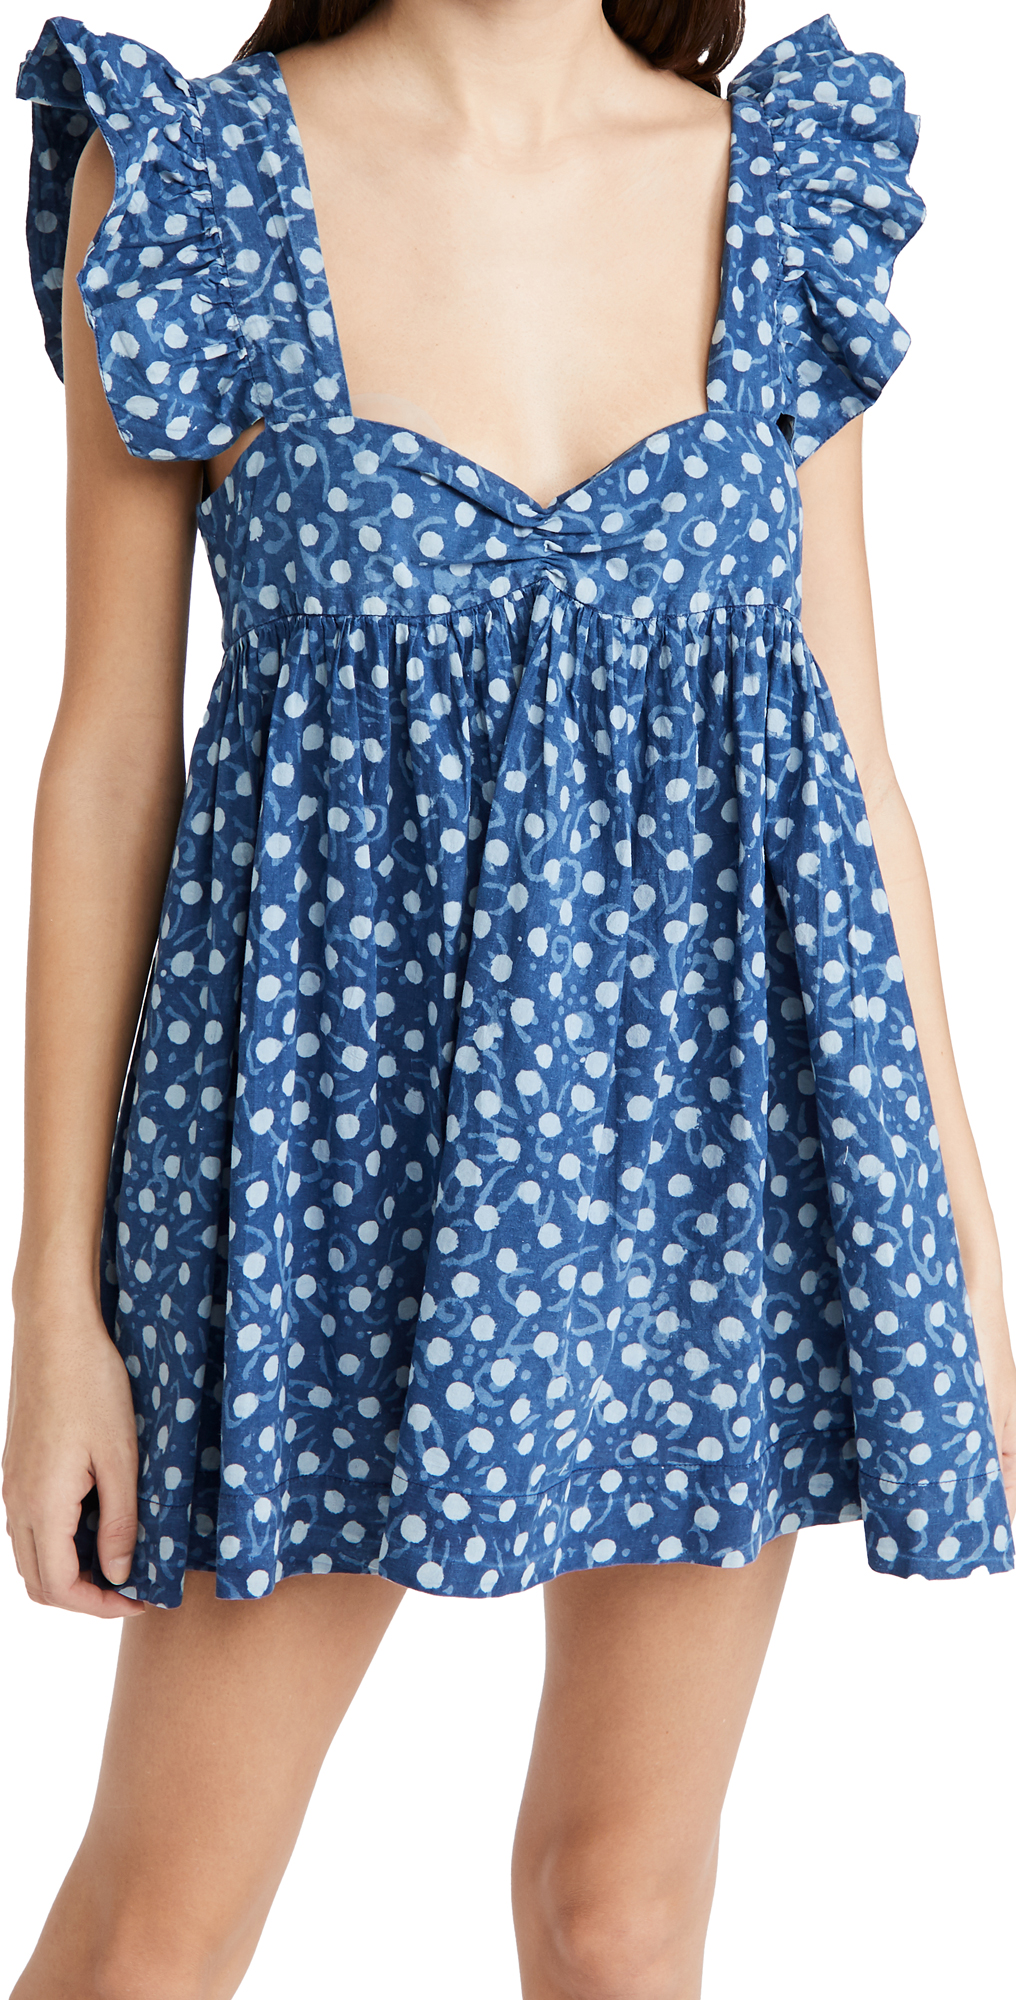 Alix of Bohemia Bluebell Block Print Ruffle Dress